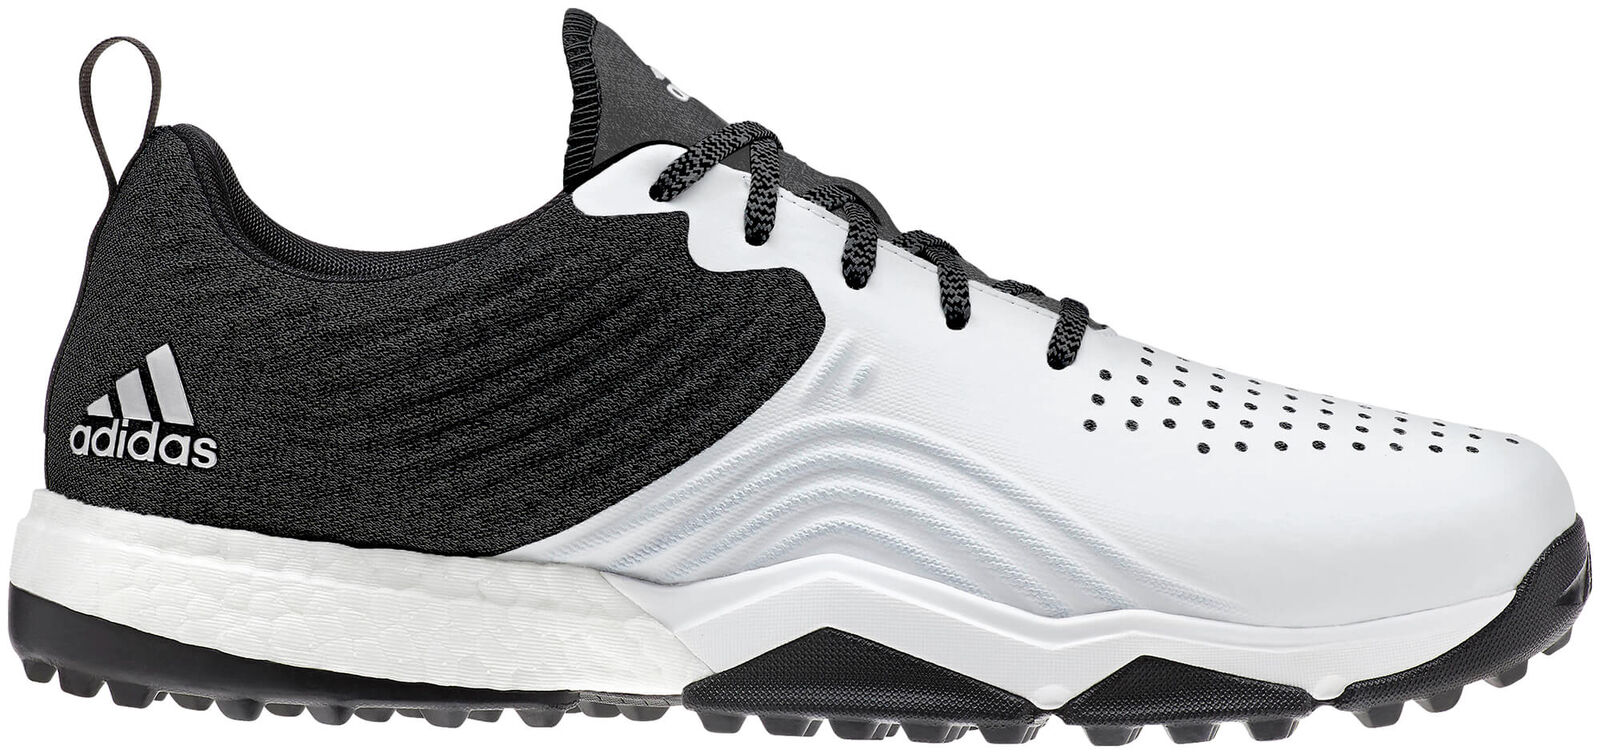 Adidas AdiPower 4orged S Golf Shoes Black/White/Silver Men's New - Choose Size!